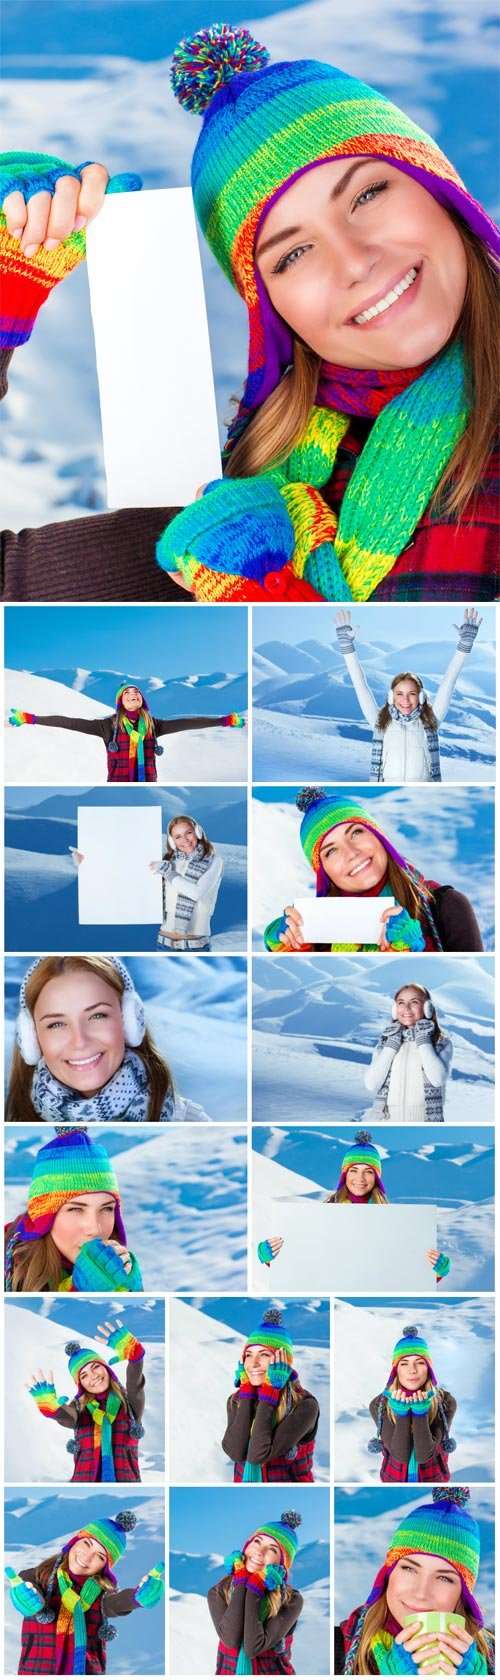 Winter vacation in the mountains stock photo №4